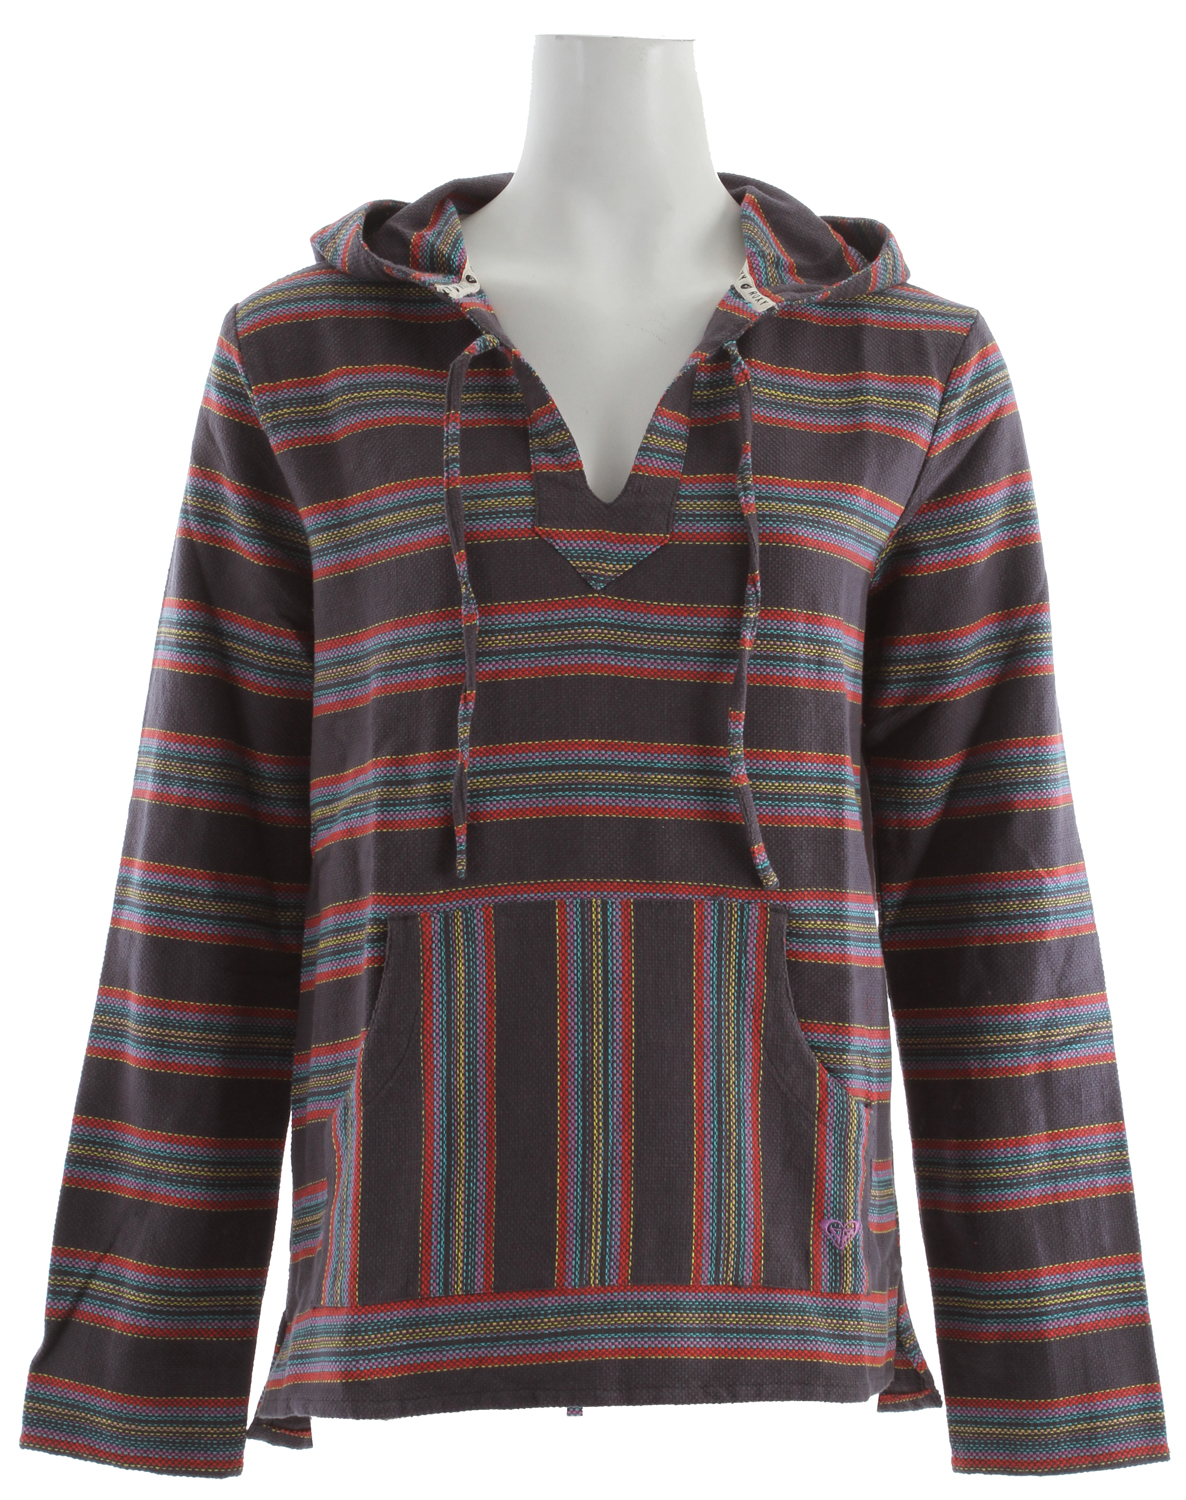 "Surf Key Features of the Roxy Tequila 2 Hoodie: 100% cotton heavy yarn dye stripe Beach pullover with kanga pocket Contrast stripe at hood 27"" hps - $41.95"